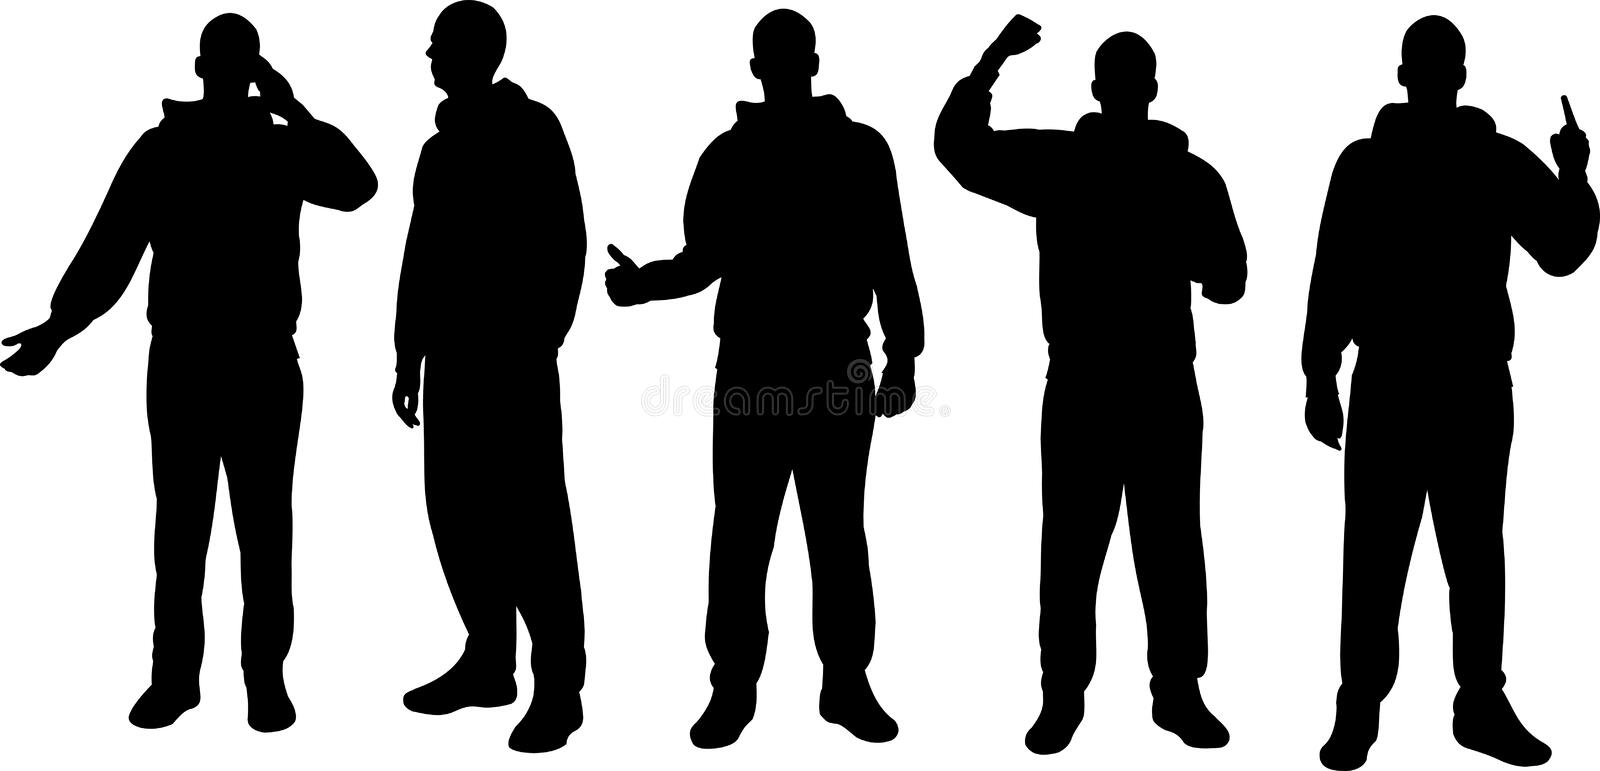 Men silhouettes royalty free illustration